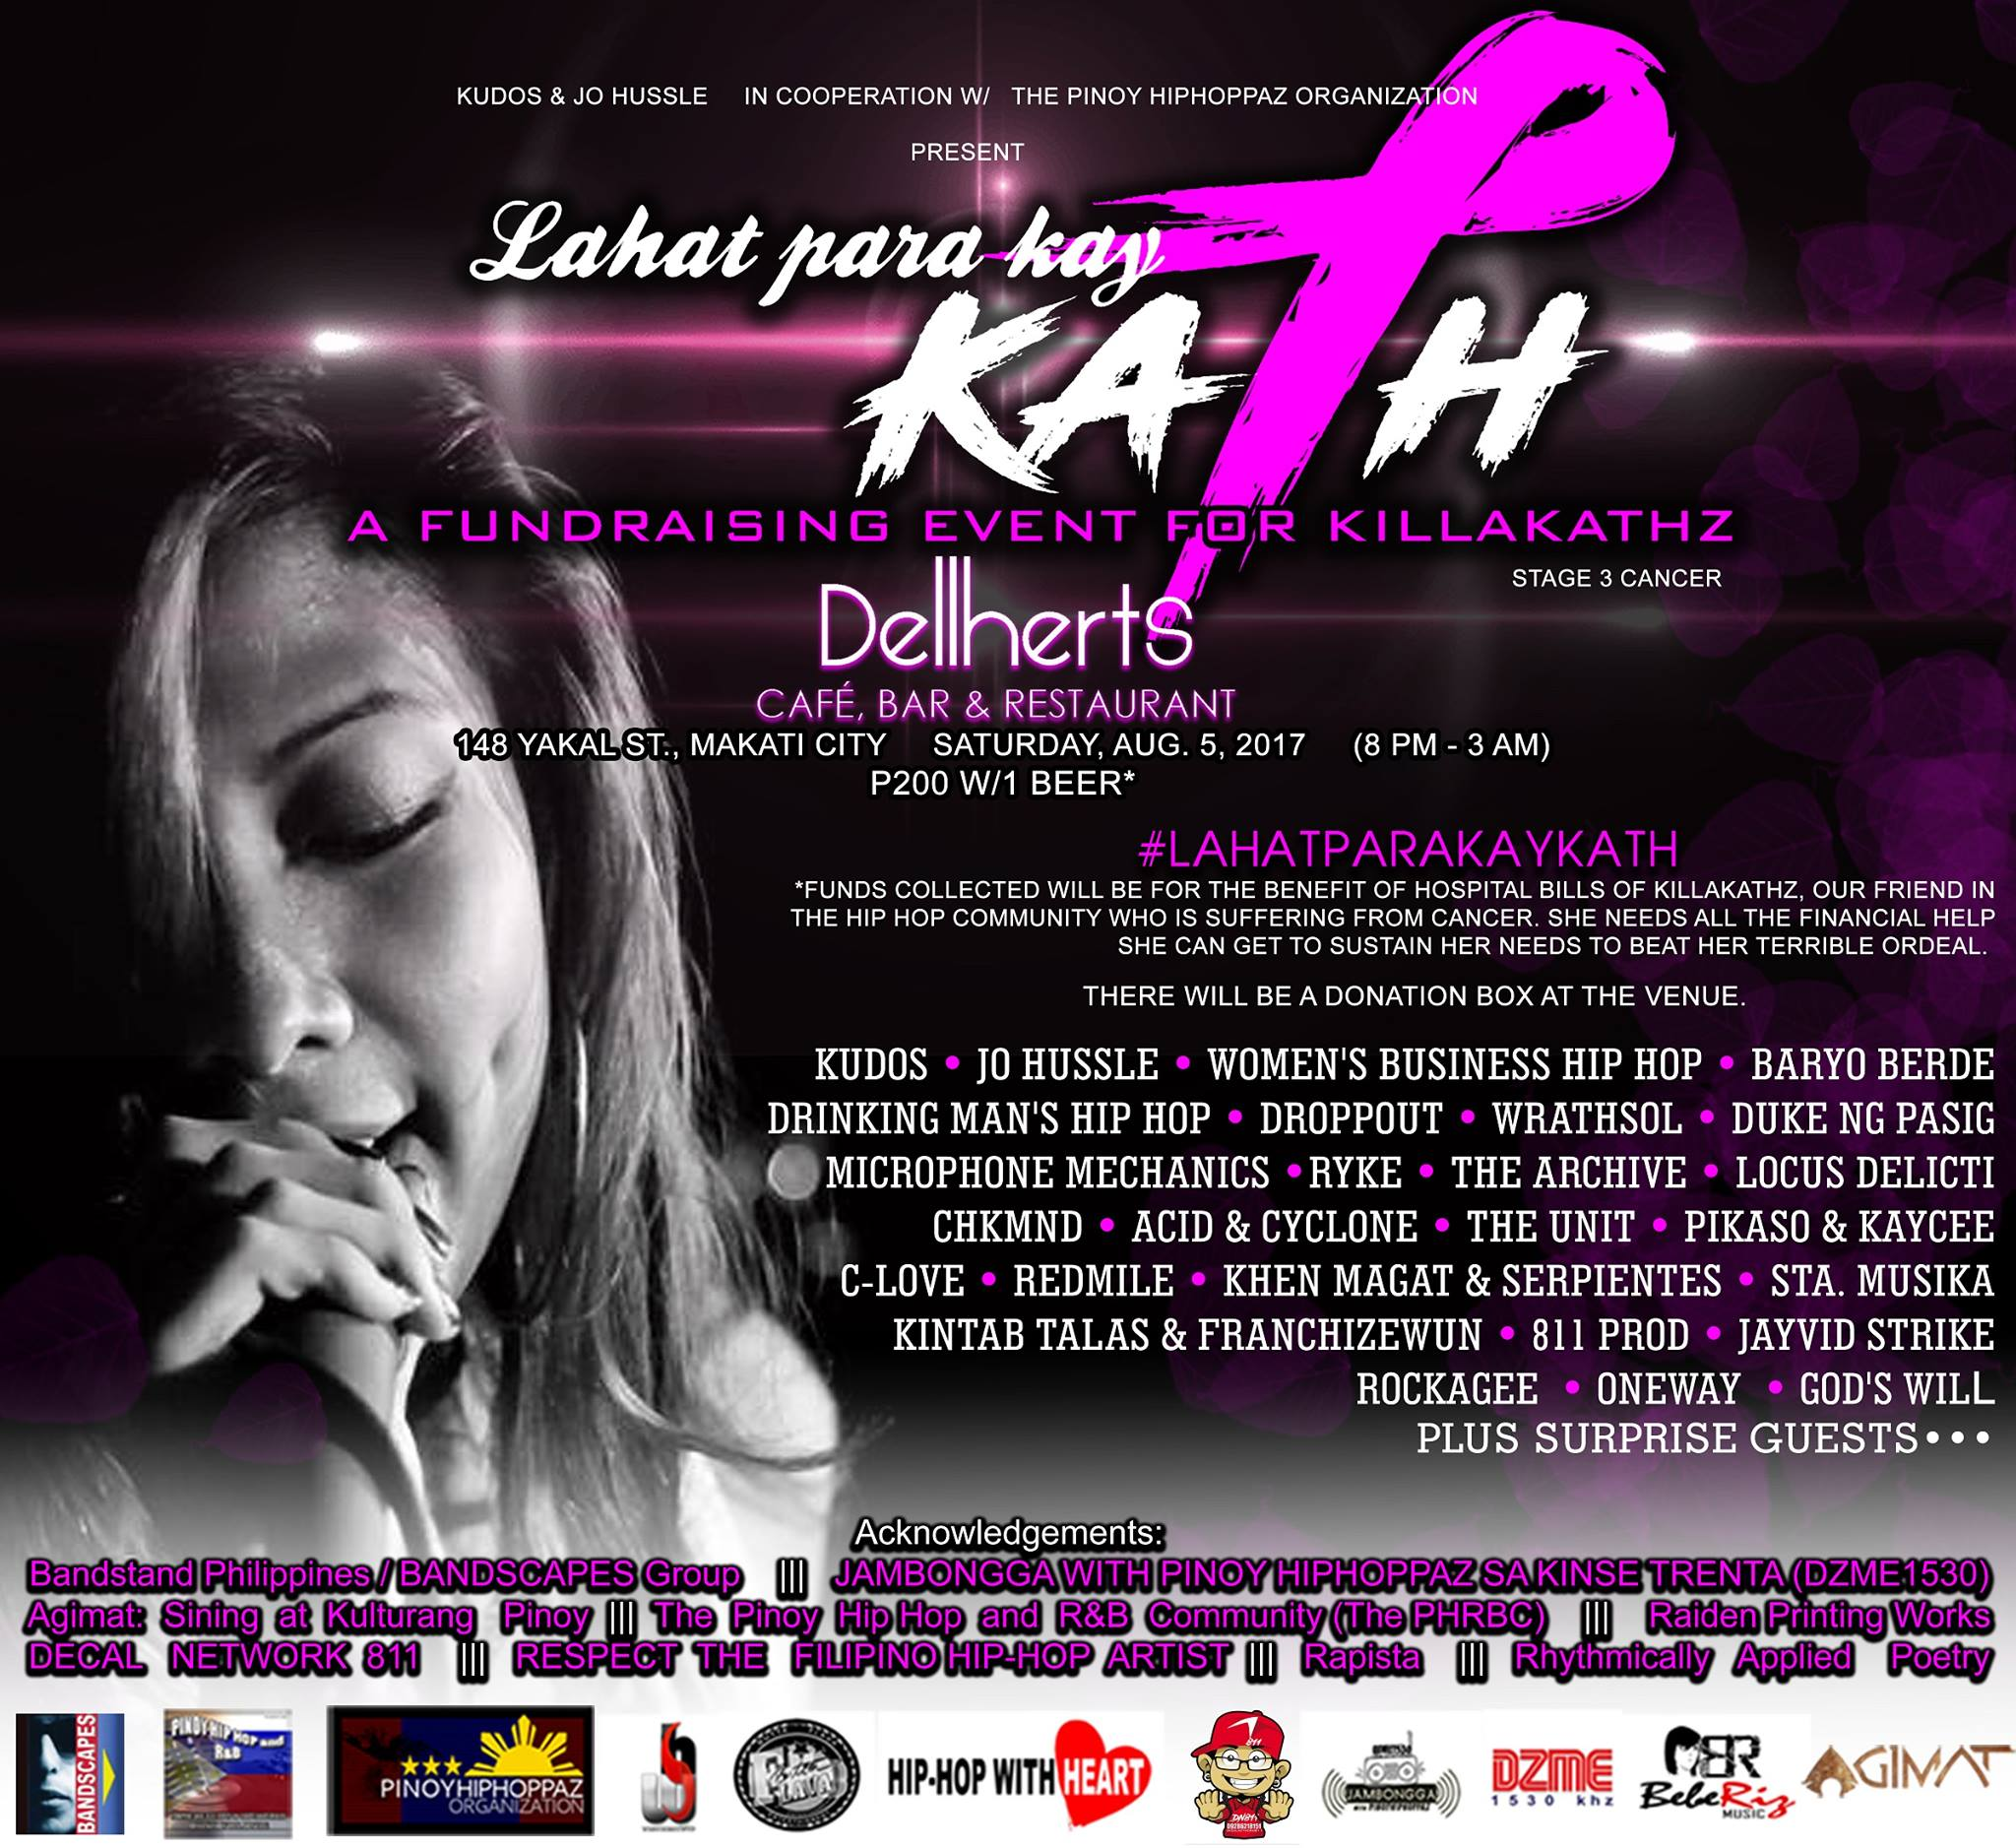 "Lahat Para Kay Kath: A Fundraising Event for Killakathz Public · Hosted by Jug Honeyluv and 3 others InterestedGoingShare clock Saturday, August 5 at 8 PM - 3 AM Aug 5 at 8 PM to Aug 6 at 3 AM pin Show Map Dellherts Cafe Bar & Restaurant 148 Yakal St. San Antonio Village, 1203 Makati About Discussion 38 Going · 23 InterestedSee All Pol, Zyx and 2 other friends are going Share Details Kudos & Jo Hussle in cooperation w/ The Pinoy Hiphoppaz Organization Present ""Lahat Para Kay Kath"" A Fundraising Event for Killakathz Saturday, Aug. 5, 2017 8pm to 3am Dellherts Cafe, Bar & Restaurant 148 Yakal St., Makati City P200 w/1 beer* *Funds collected will be for the benefit of hospital bills of Killakathz, our friend in the Hip Hop community who is suffering from Cancer. She needs all the financial help she can get to sustain her needs to beat her terrible ordeal. Beneficiary: https://www.facebook.com/killa.kathz?ref=br_tf Sets From: (According to Confirmation) Kudos Jo Hussle Women's Business Hip Hop Baryo Berde Drinking Man's Hip Hop Droppout Wrathsol Duke ng Pasig Microphone Mechanics Ryke The Archive Locus Delicti Chkmnd Acid & Cyclone The Unit Pikaso & Kaycee C-Love Redmile Khen Magat & Serpientes Sta. Musika Kintab Talas & Franchizewun 811 Prod Jayvid Strike Rockagee Oneway God's Will + more surprise guests! LINE UP IS FULL!!! NO MORE SLOTS. For details on how to donate, please check back here, regularly. There will also be a donation box in the venue for those who'd like to donate any amount. Acknowledgements: Decal Network 811 Raiden Printing Works Bandstand Philippines BANDSCAPES Group Agimat: Sining at Kulturang Pinoy The Pinoy Hip Hop and R&B Community (The PHRBC) RESPECT THE FILIPINO HIP-HOP ARTIST JAMBONGGA WITH PINOY HIPHOPPAZ SA KINSE TRENTA (DZME1530) Rapista Rhythmically Applied Poetry"